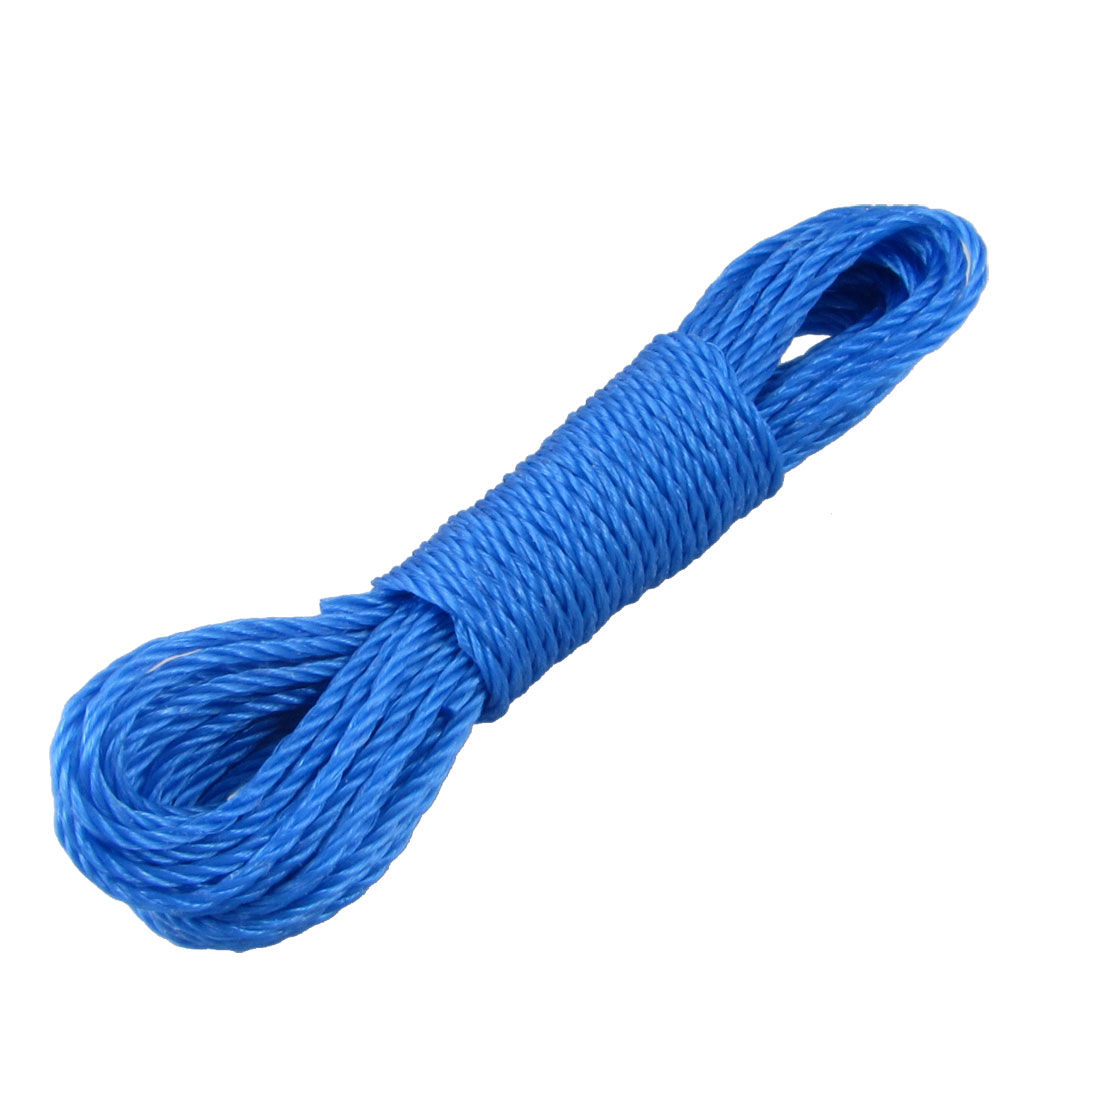 32Ft Length Clothes Hang Rope Nylon String Clothesline Blue